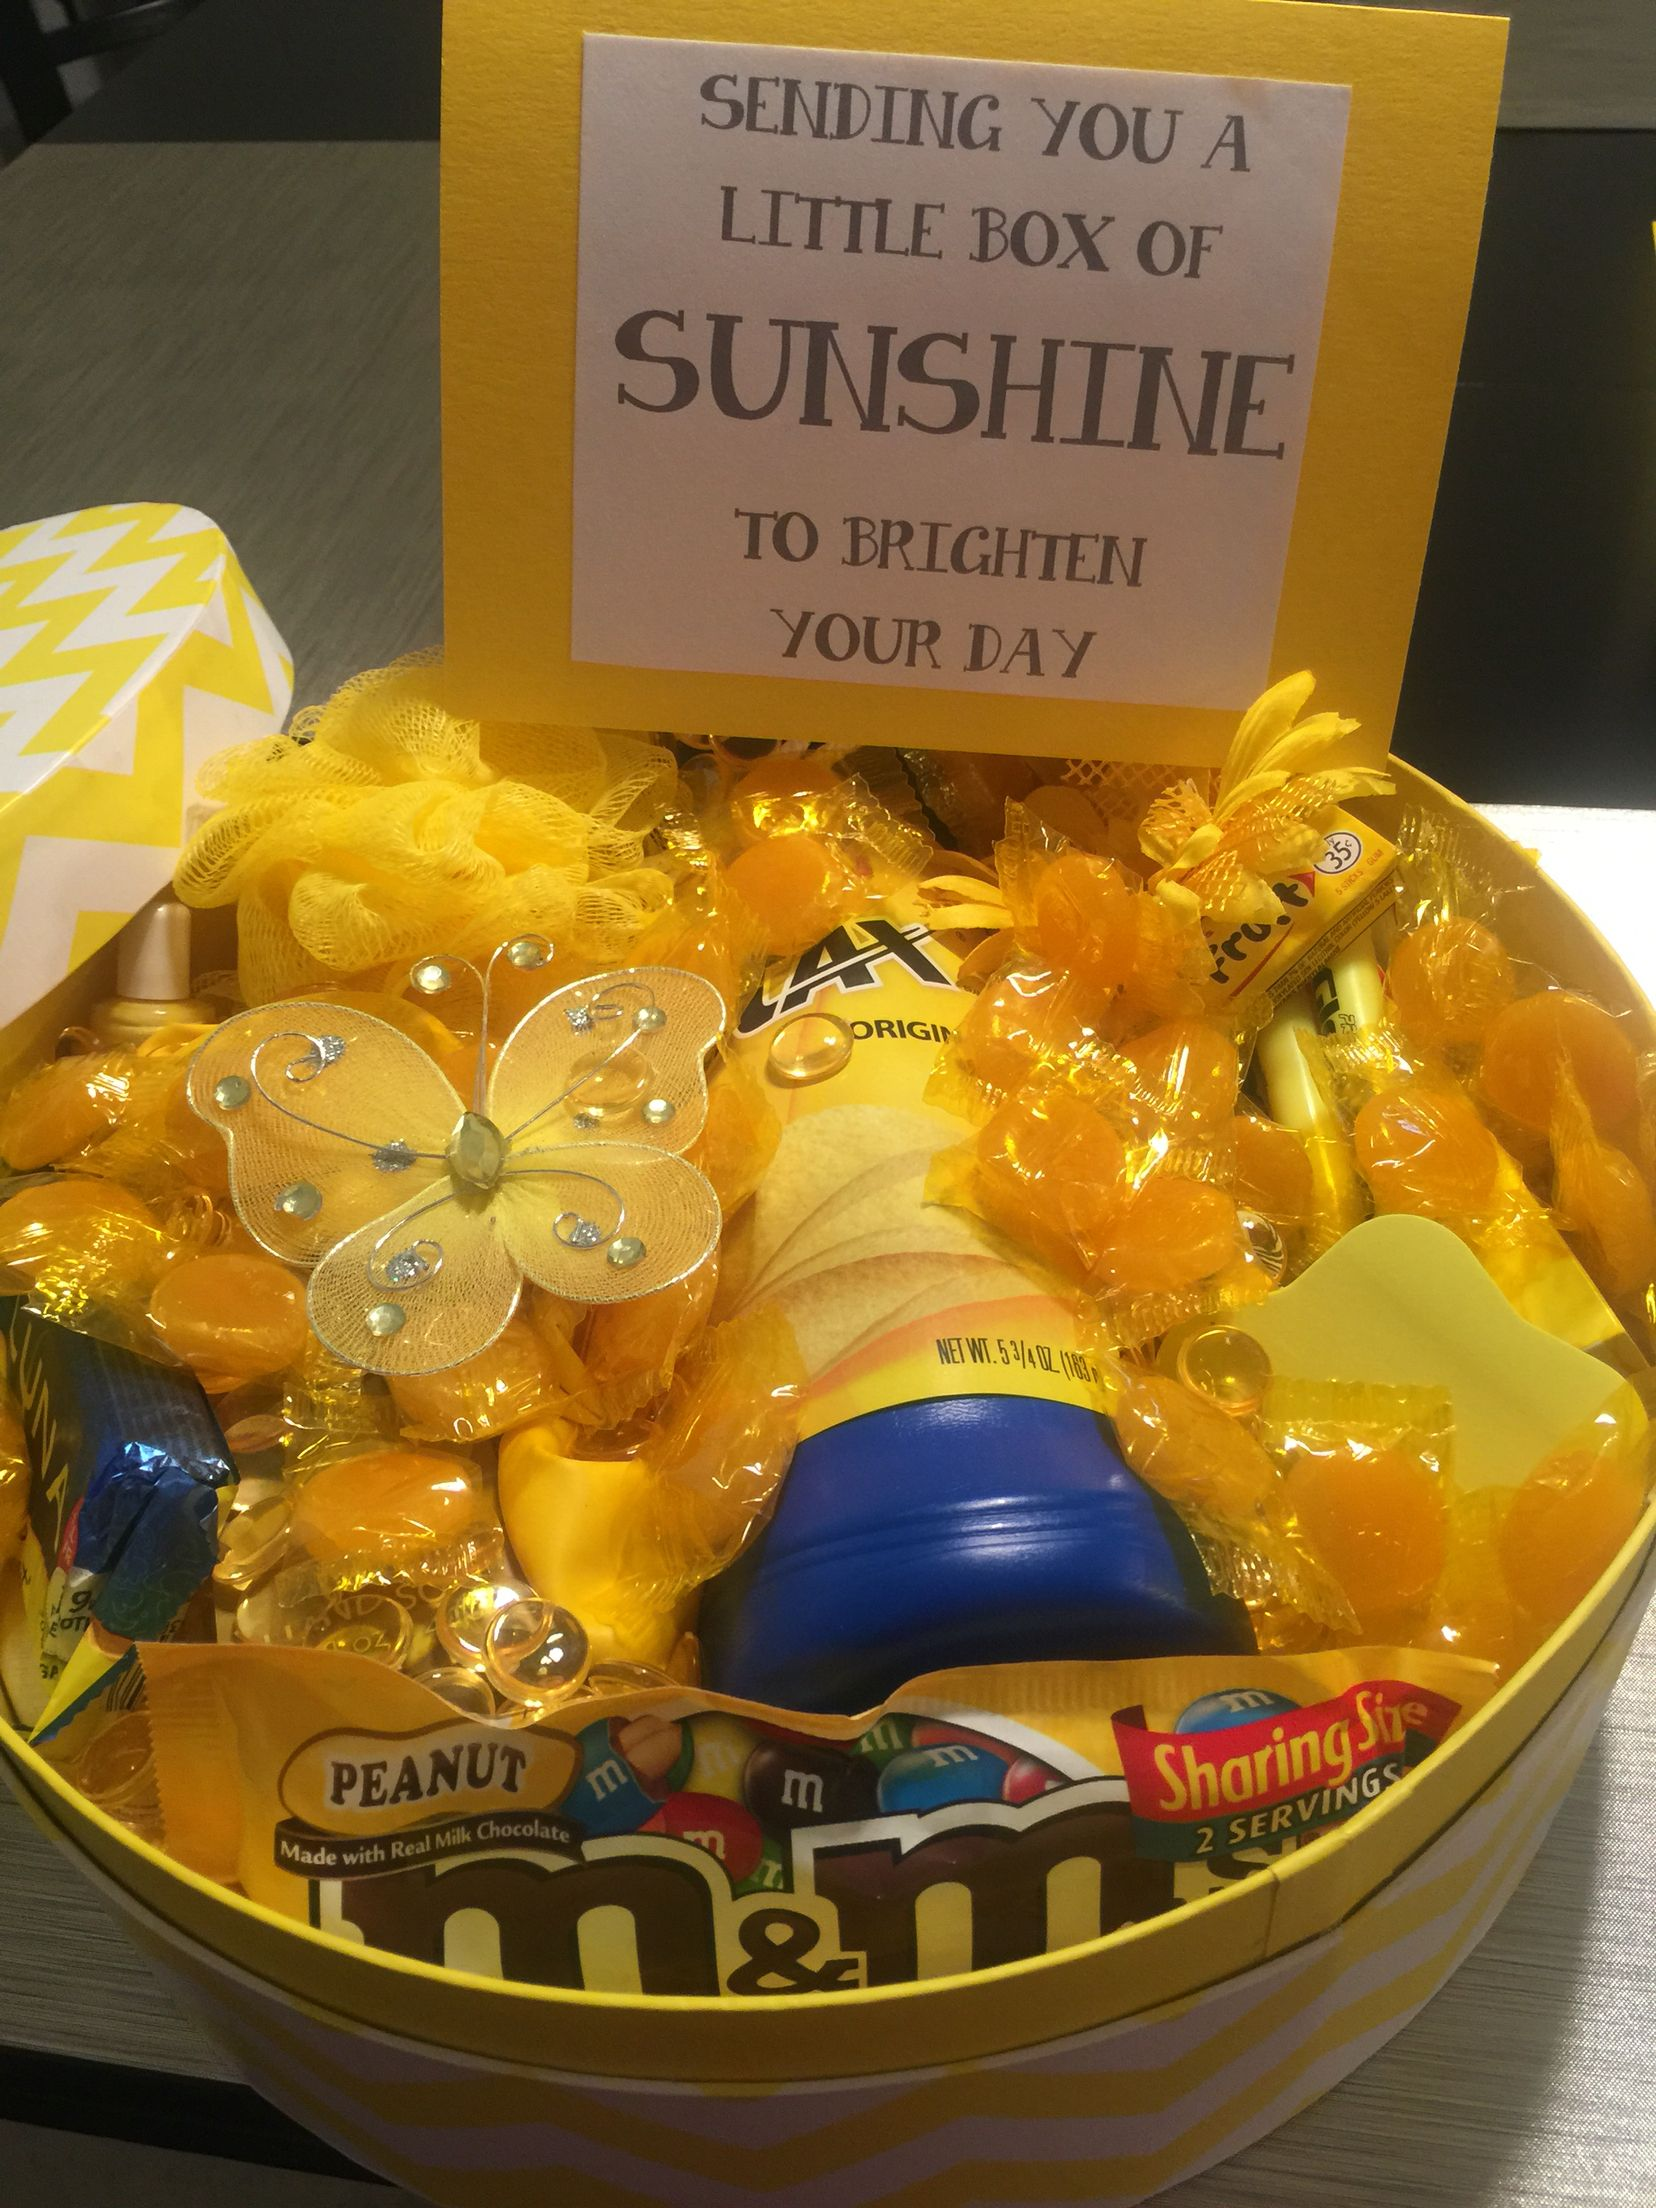 Sunshine Box Send Someone A Of Full All Things Yellow To Brighten Their Day